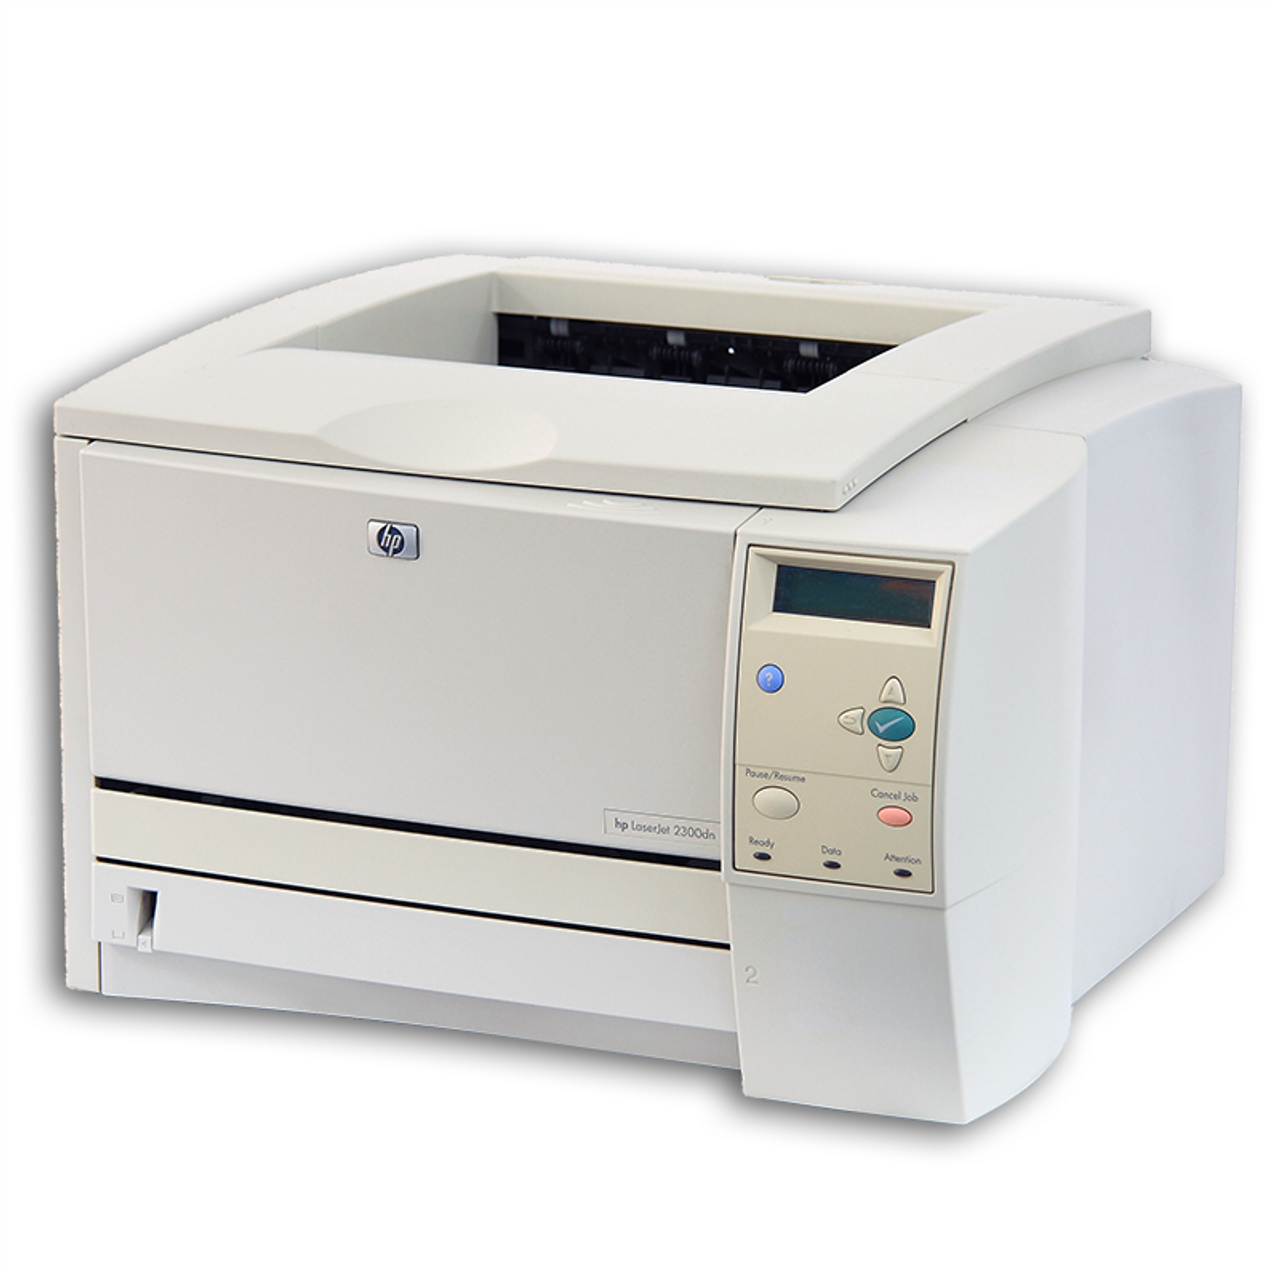 HP LaserJet 2300n - Q2473A - Laser Printer